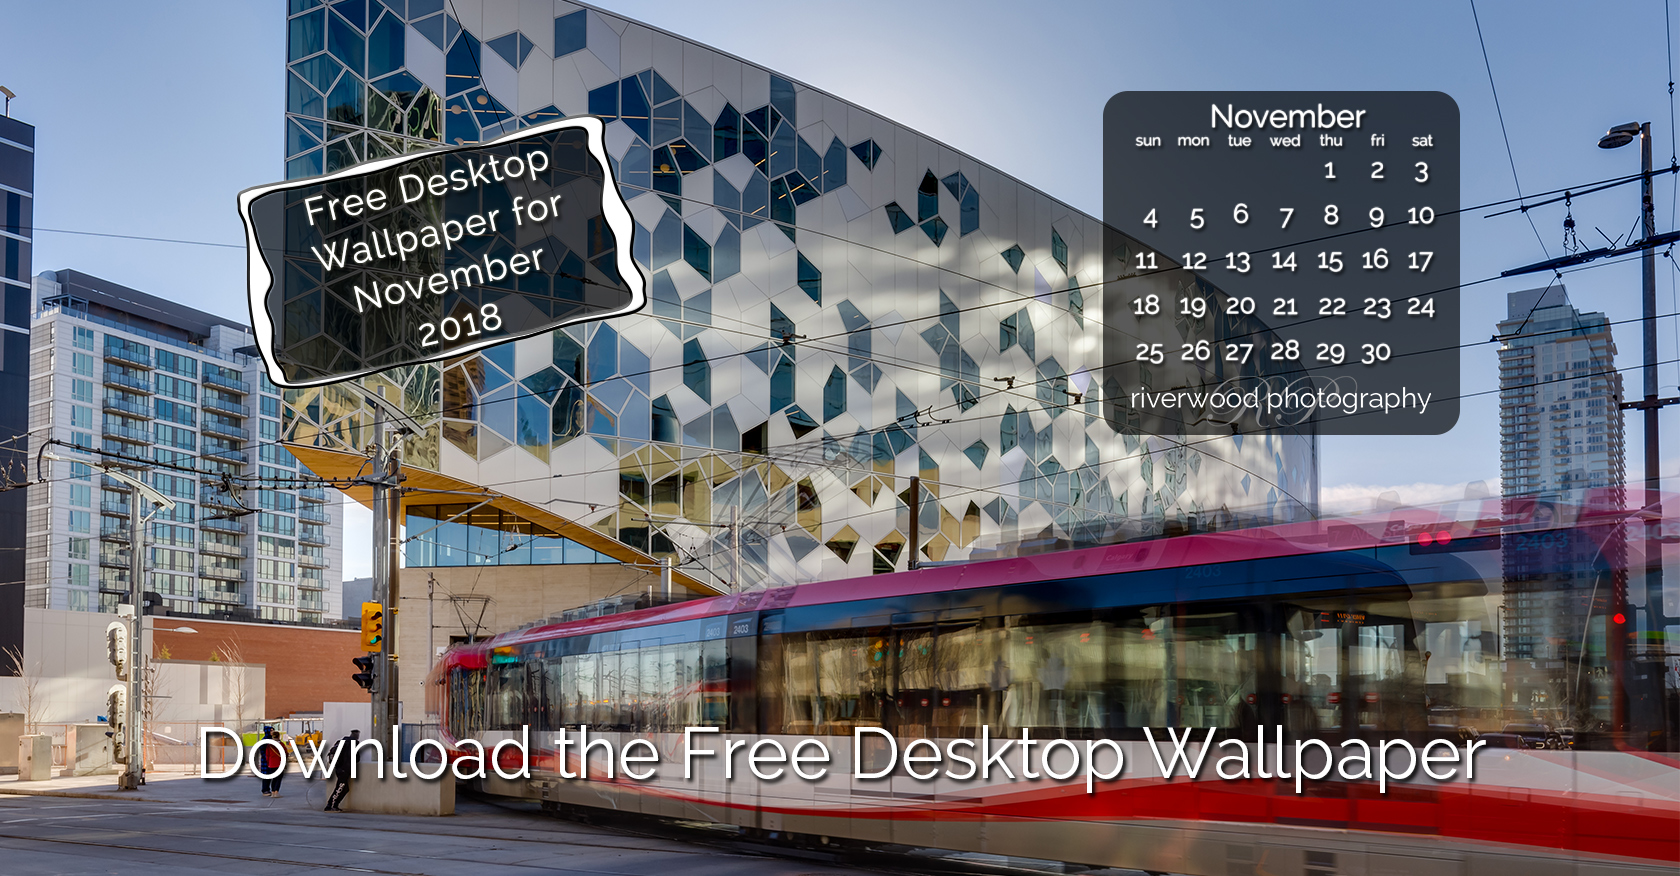 Free Desktop Wallpaper for November 2018 – Calgary Central Library